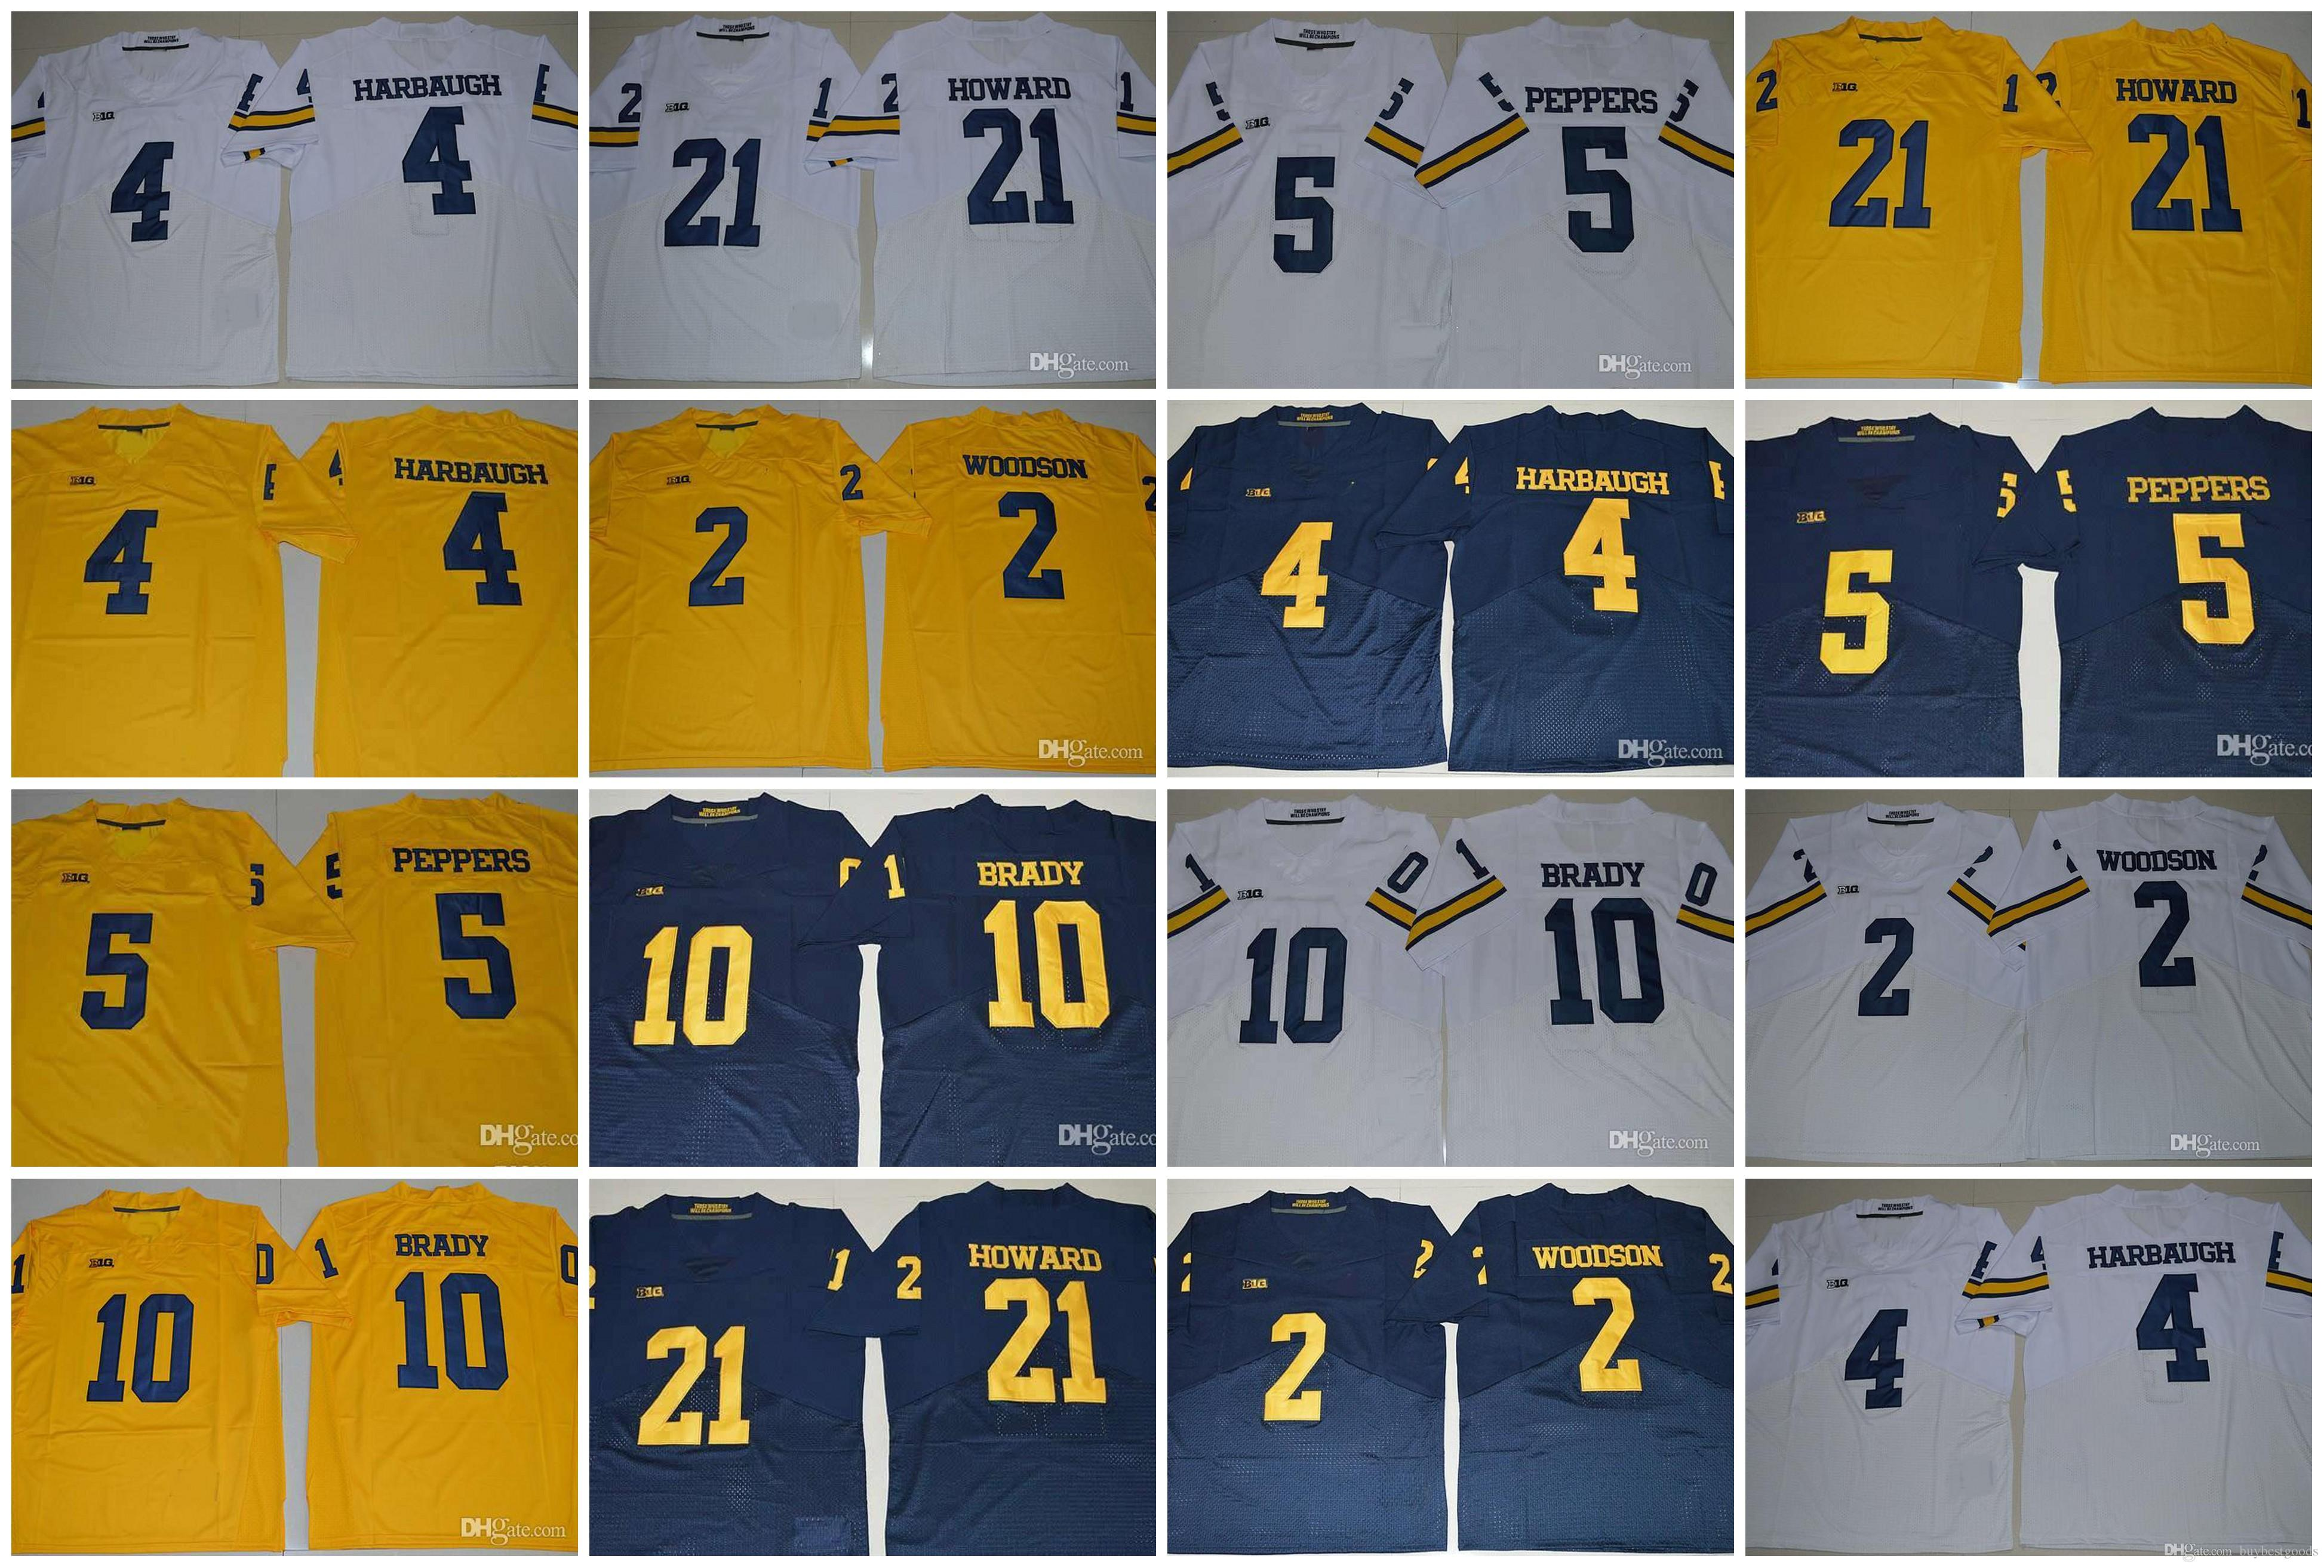 2018 Michigan Wolverines College Football Jerseys 2 Charles Woodson ... 595c697f3